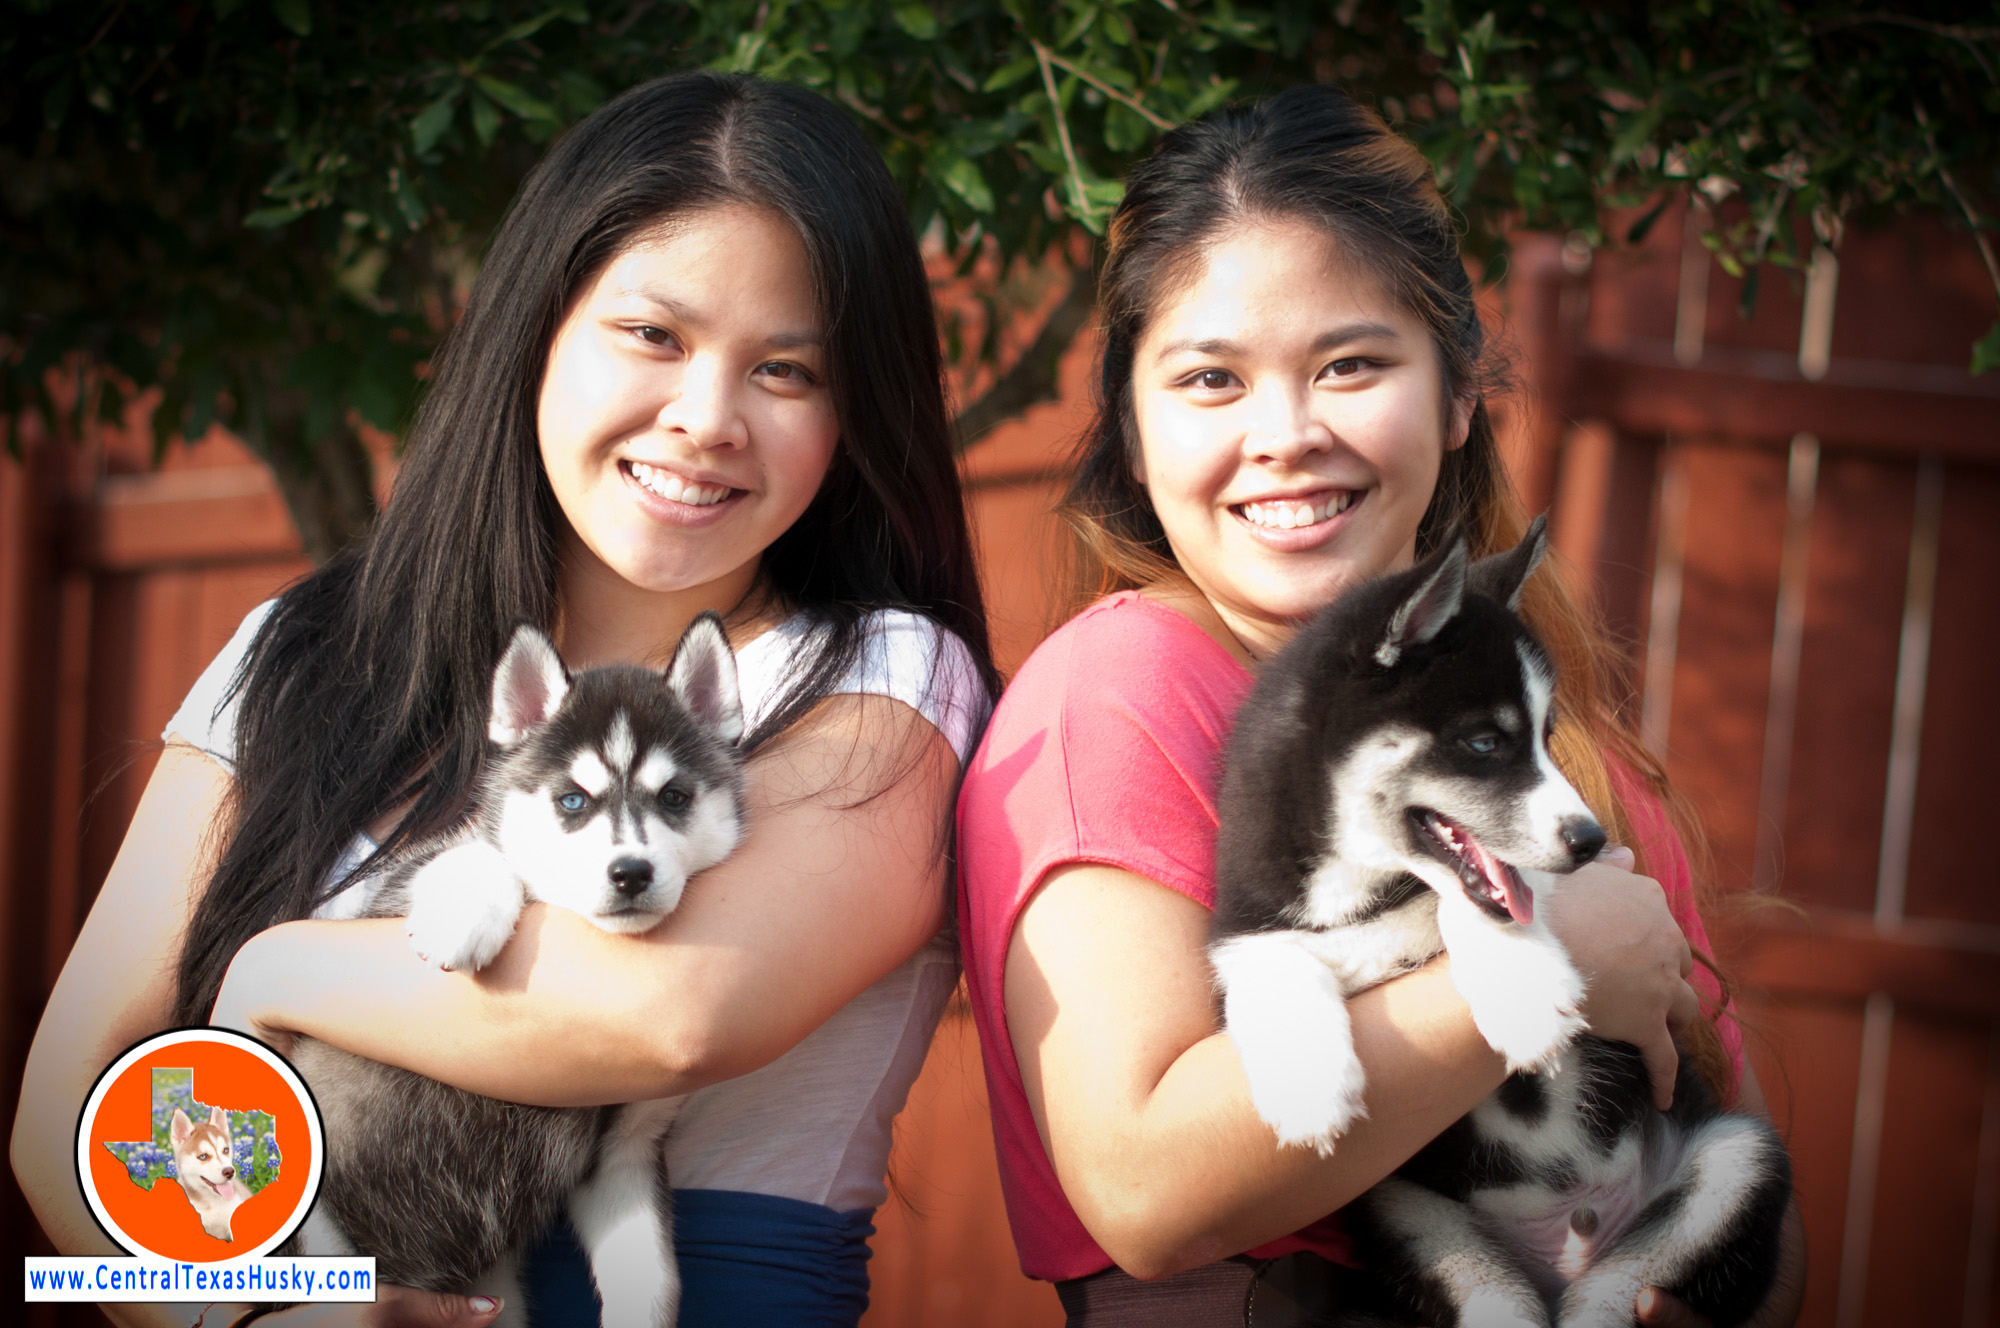 Twins with huskies